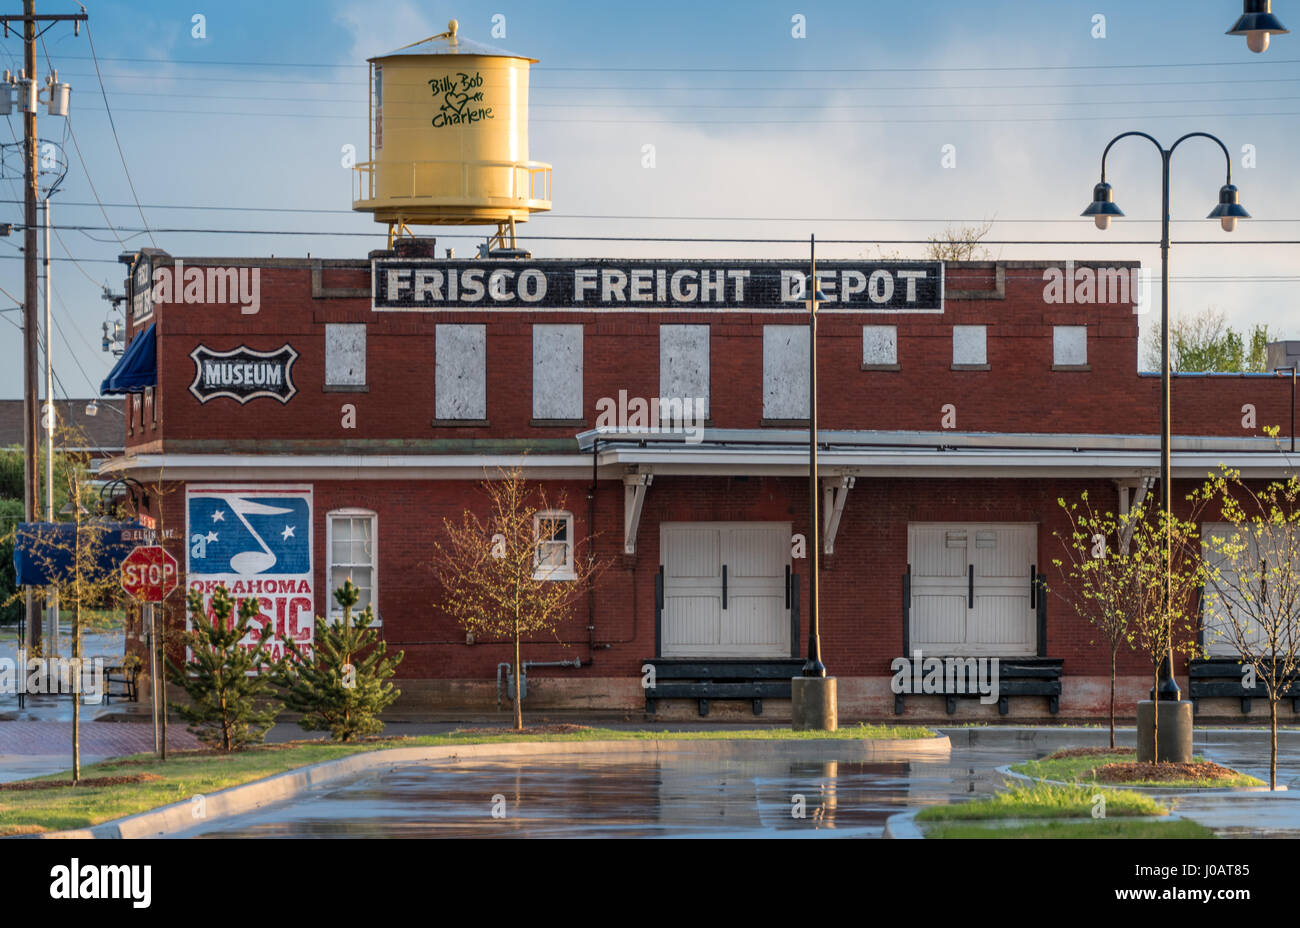 Frisco Freight Depot in Muskogee, Oklahoma, home of the Oklahoma Music Hall of Fame. (USA) Stock Photo